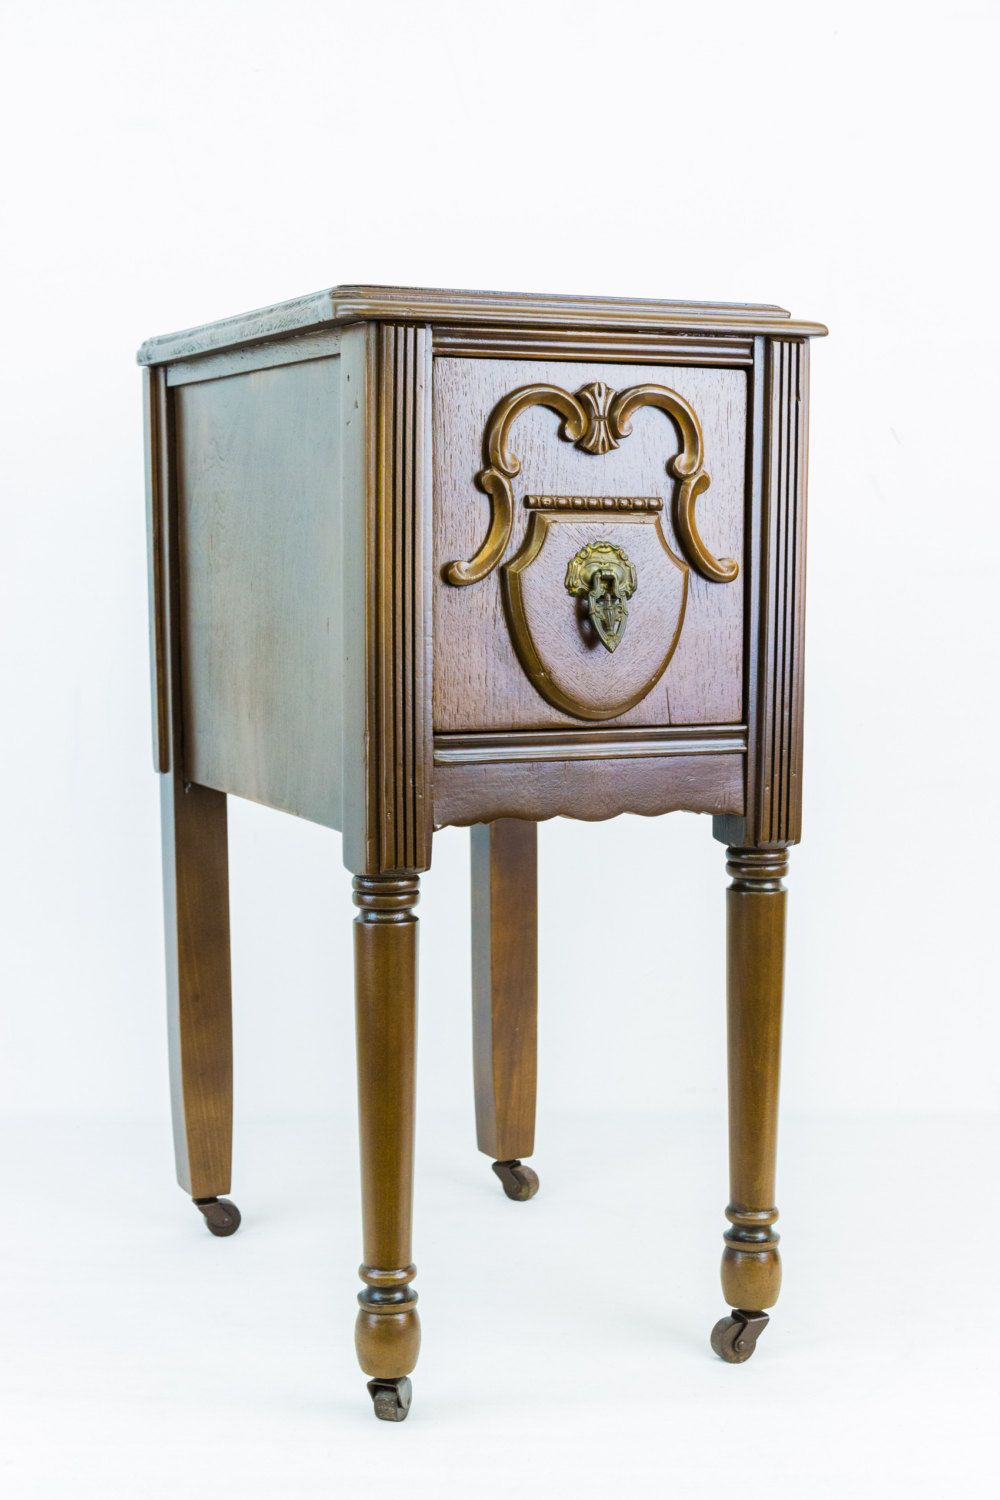 Restored wooden vanity side table with original wooden casters